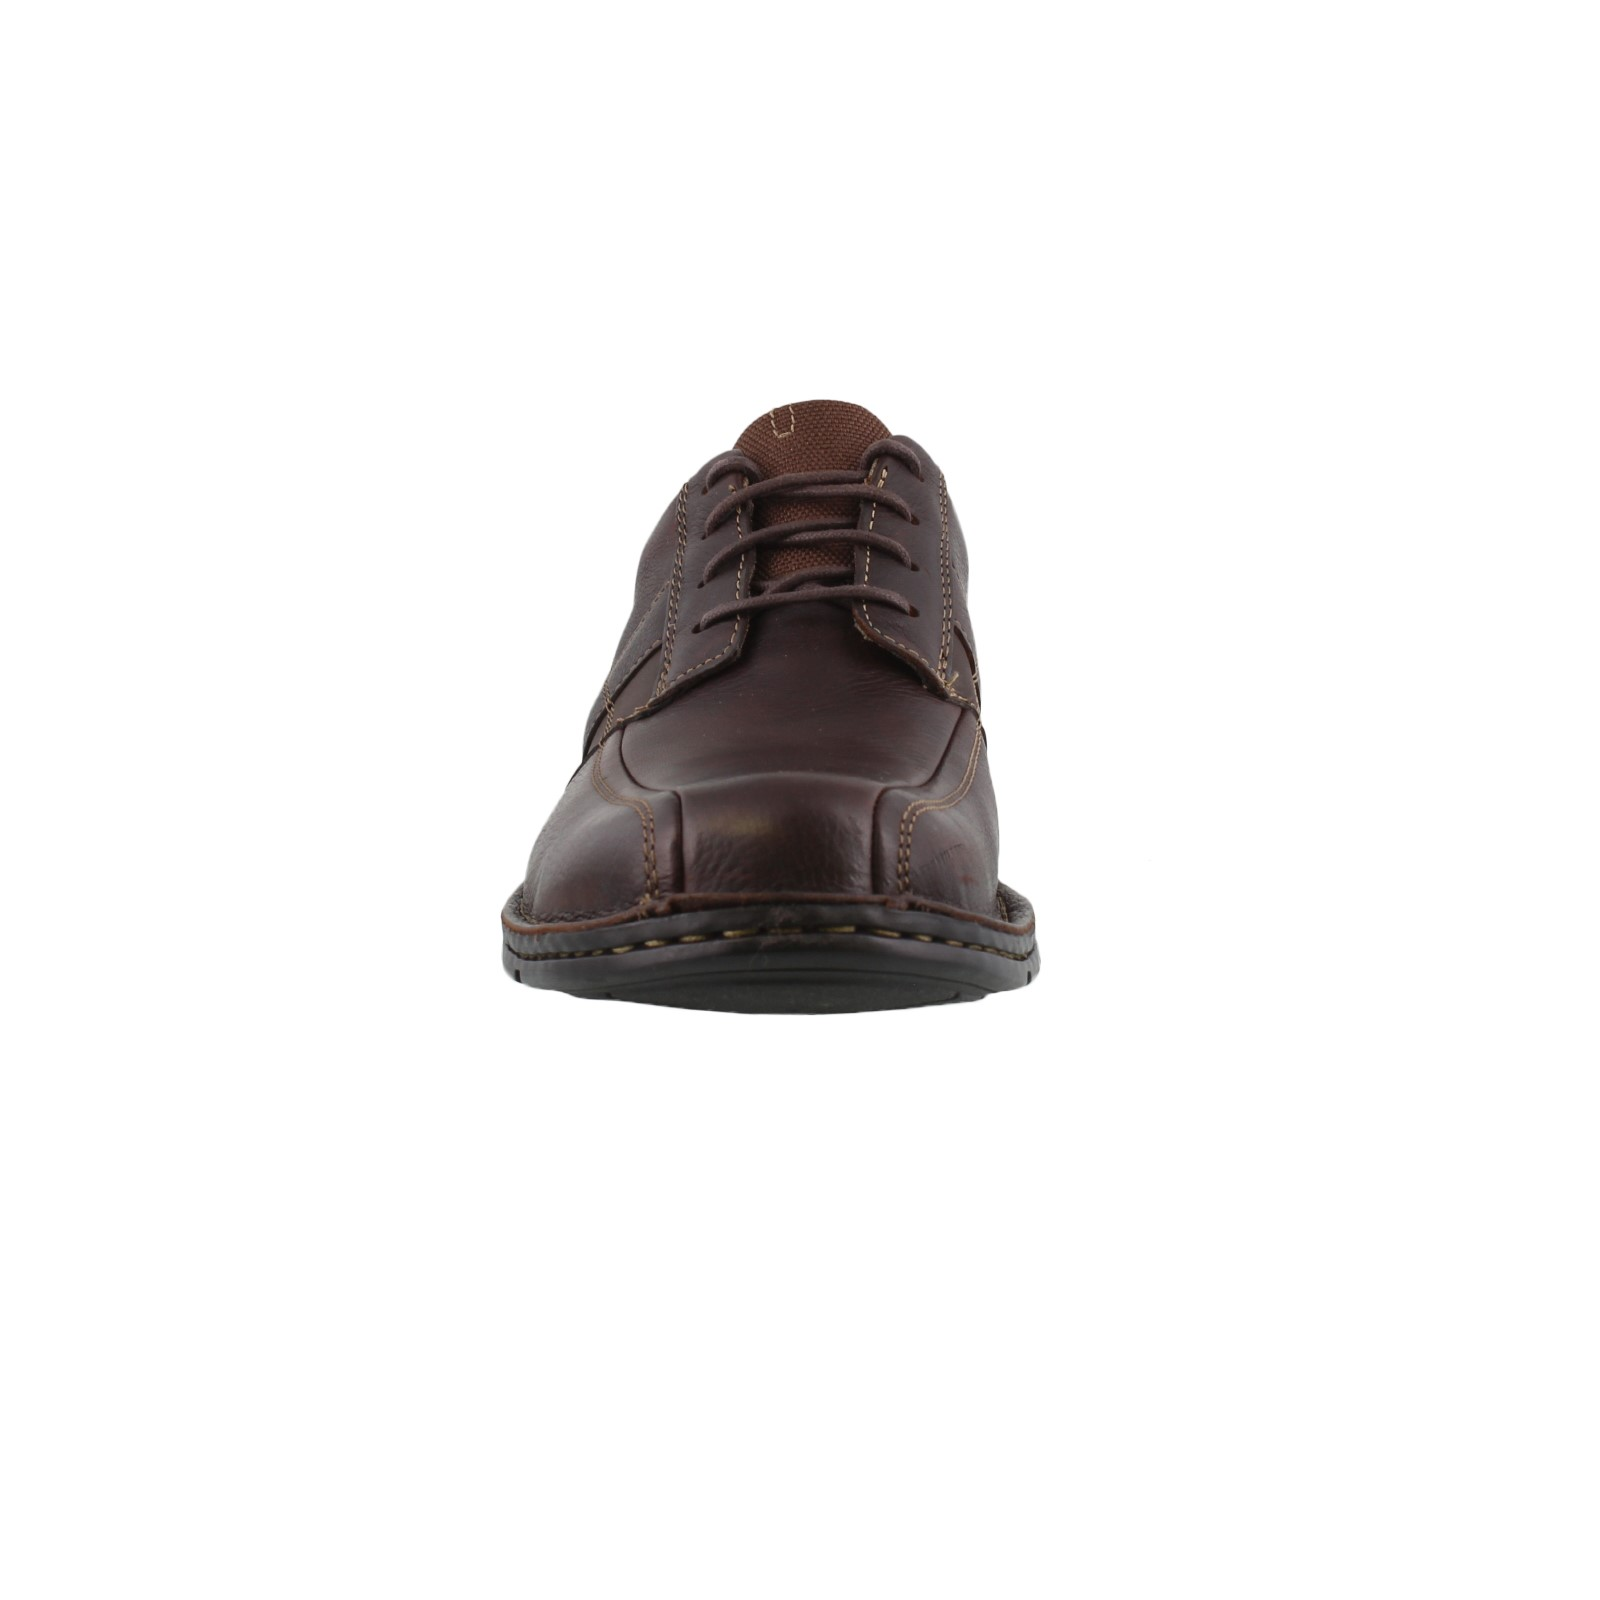 c5ba1be7d247e Next. add to favorites. Men's CLARKS, ESPACE LACE UP SHOES